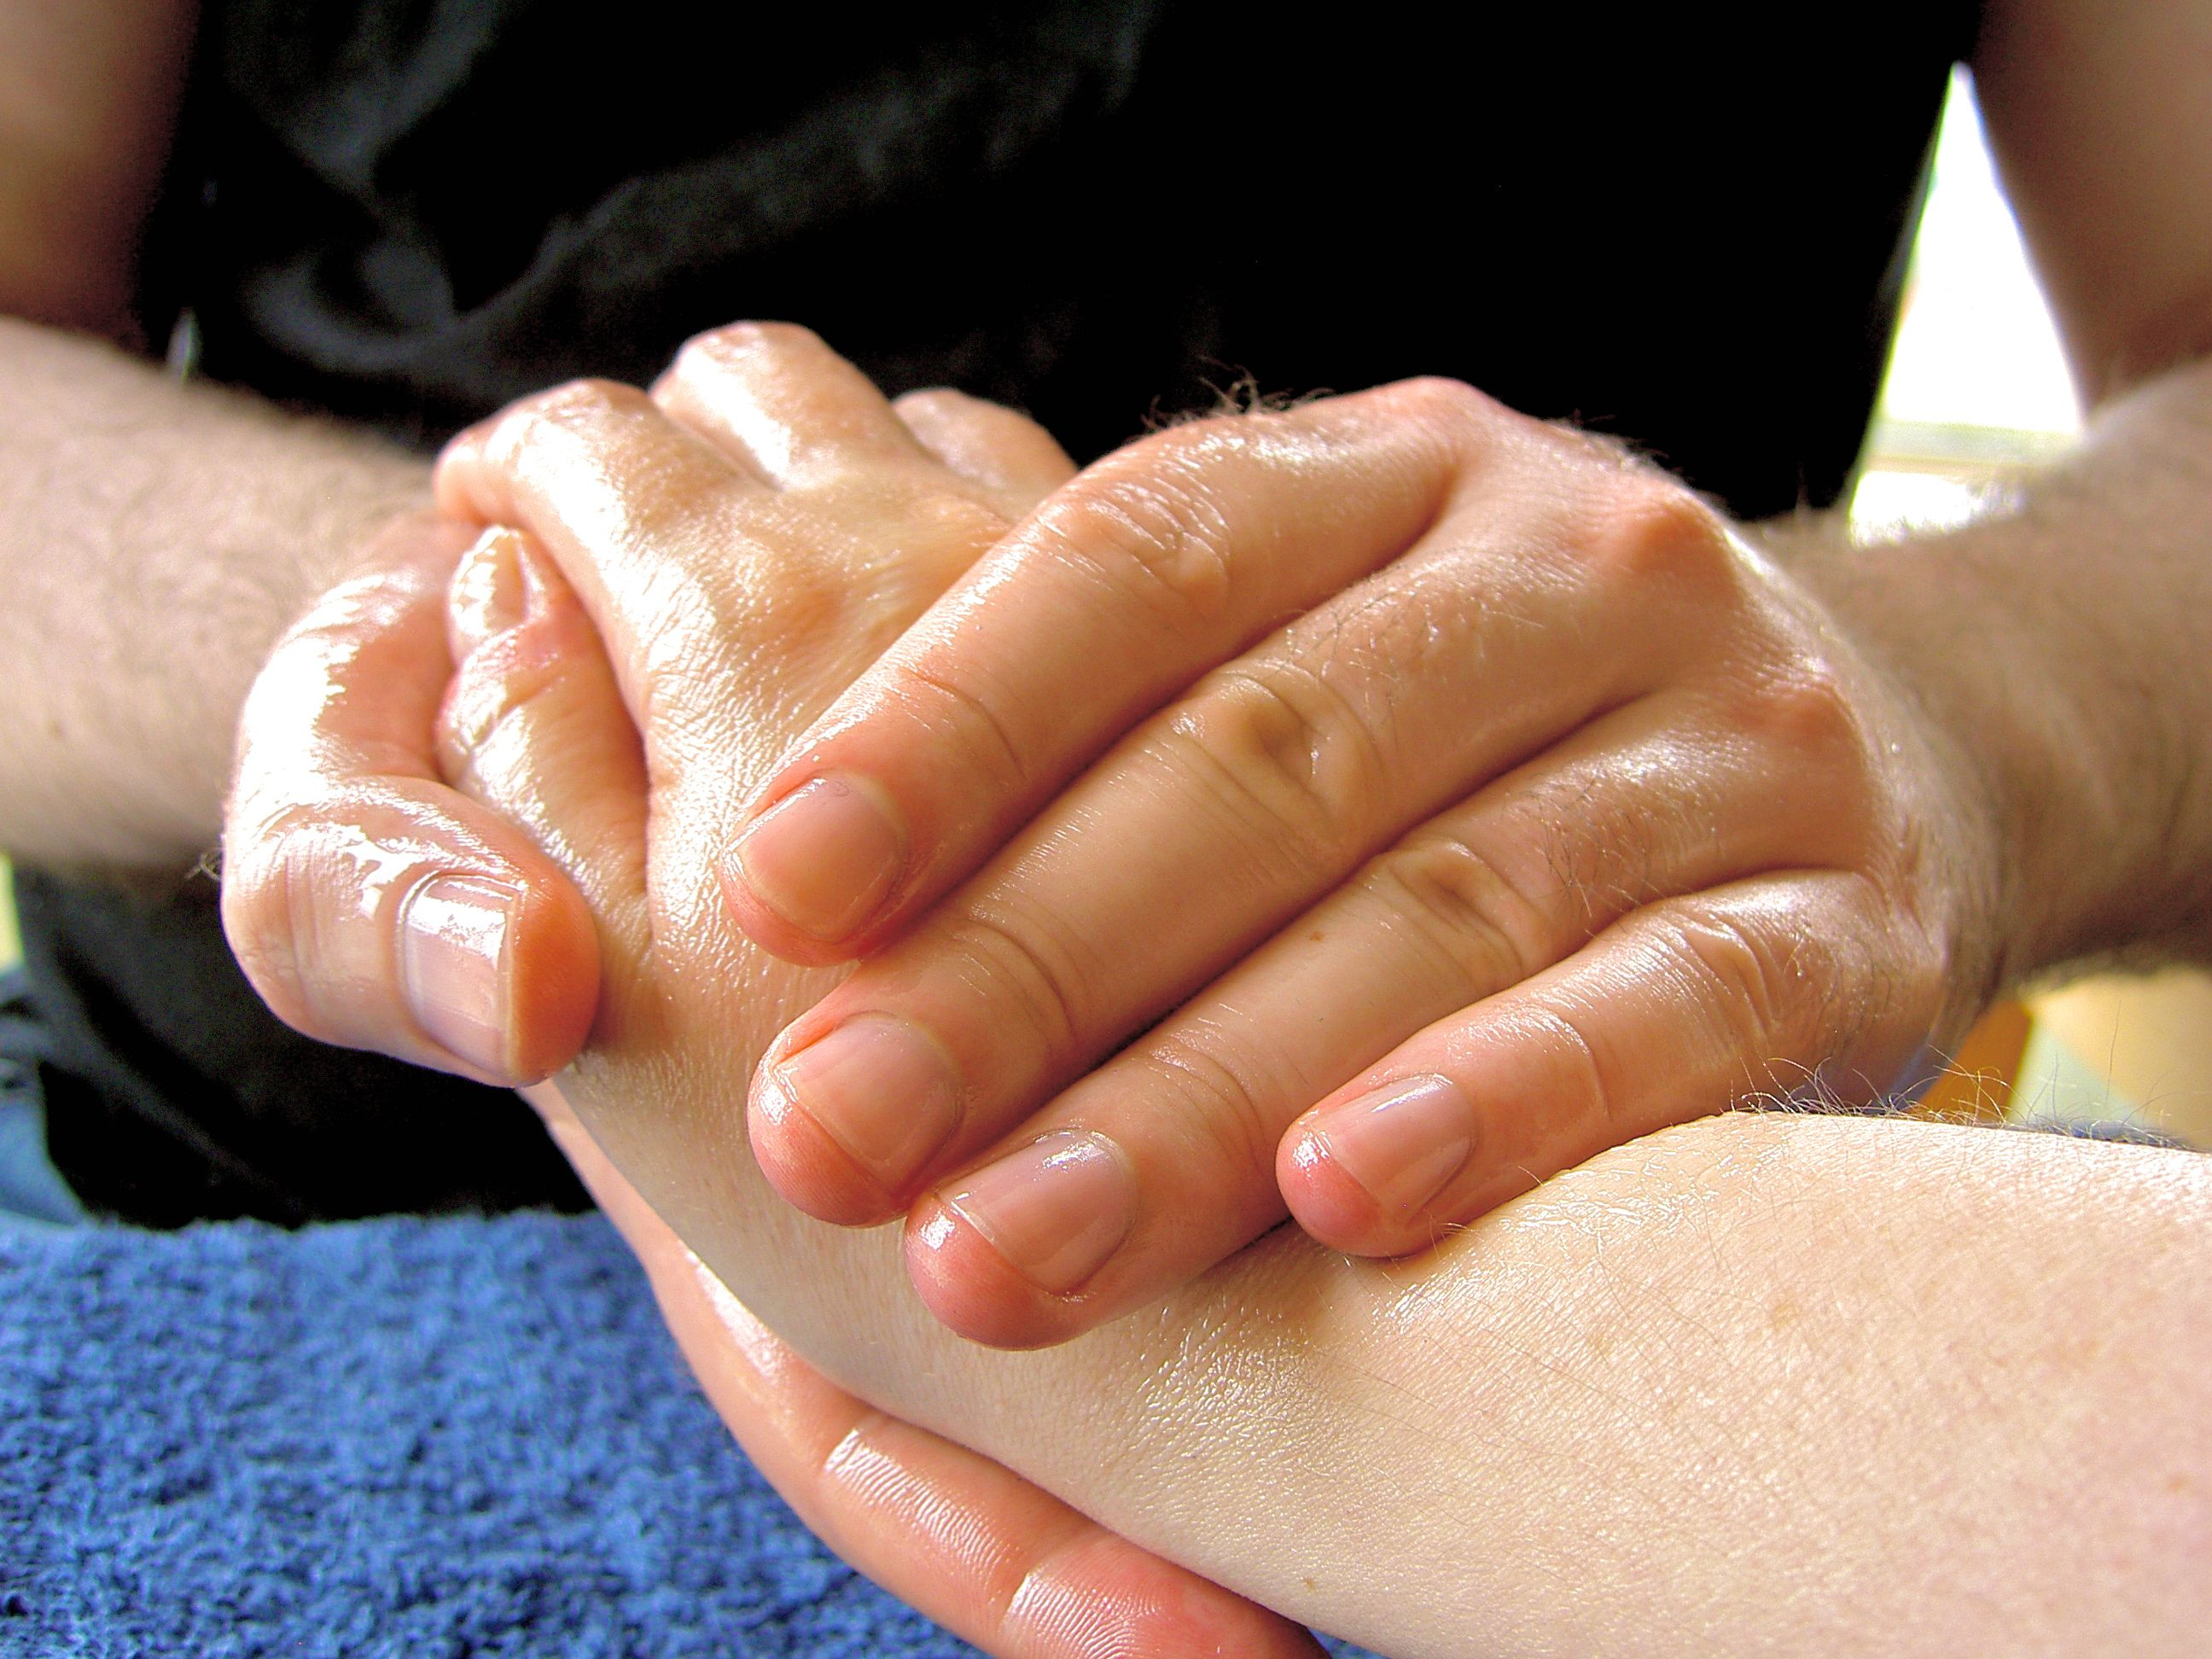 EDMC panel approves new guidelines for spas, massage centres